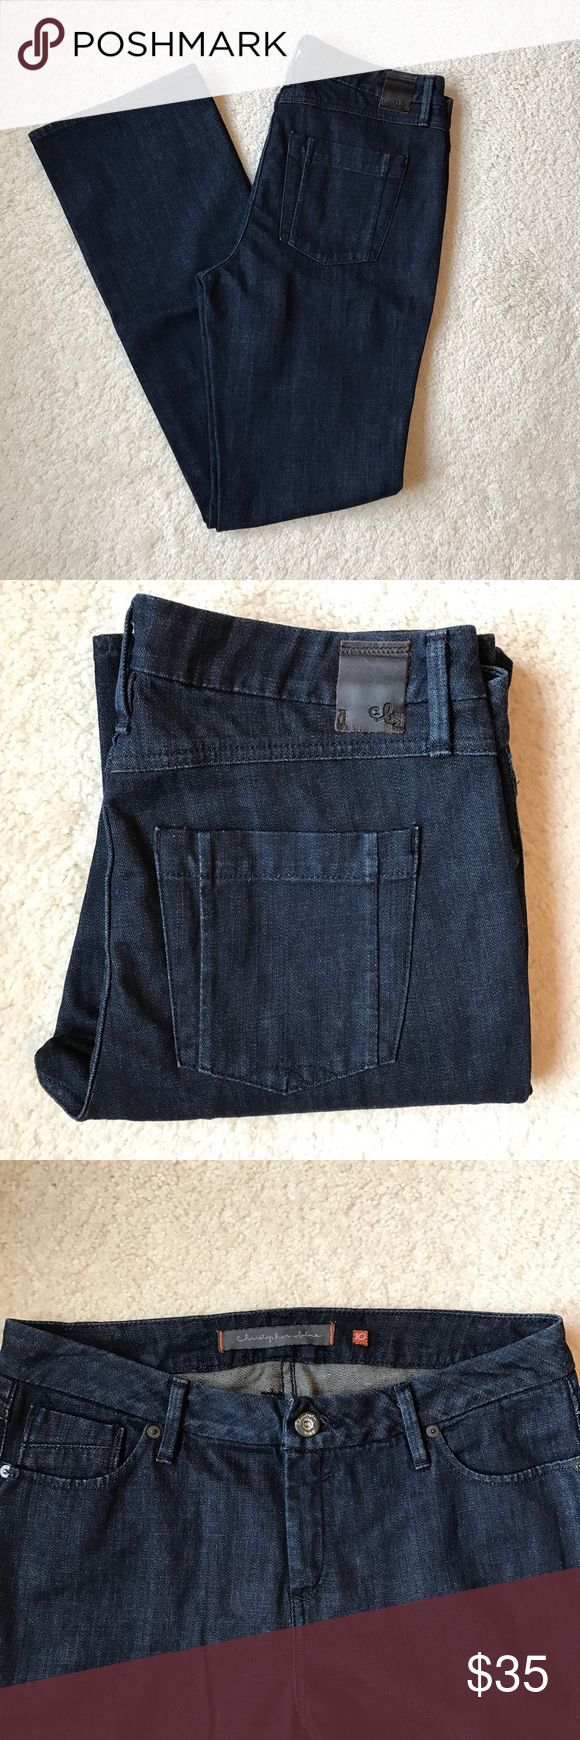 "Christopher Blue Bootcut Jeans Super comfy jeans from Neiman Marcus in excellent condition 💖 33"" inseam Christopher Blue Jeans Boot Cut"